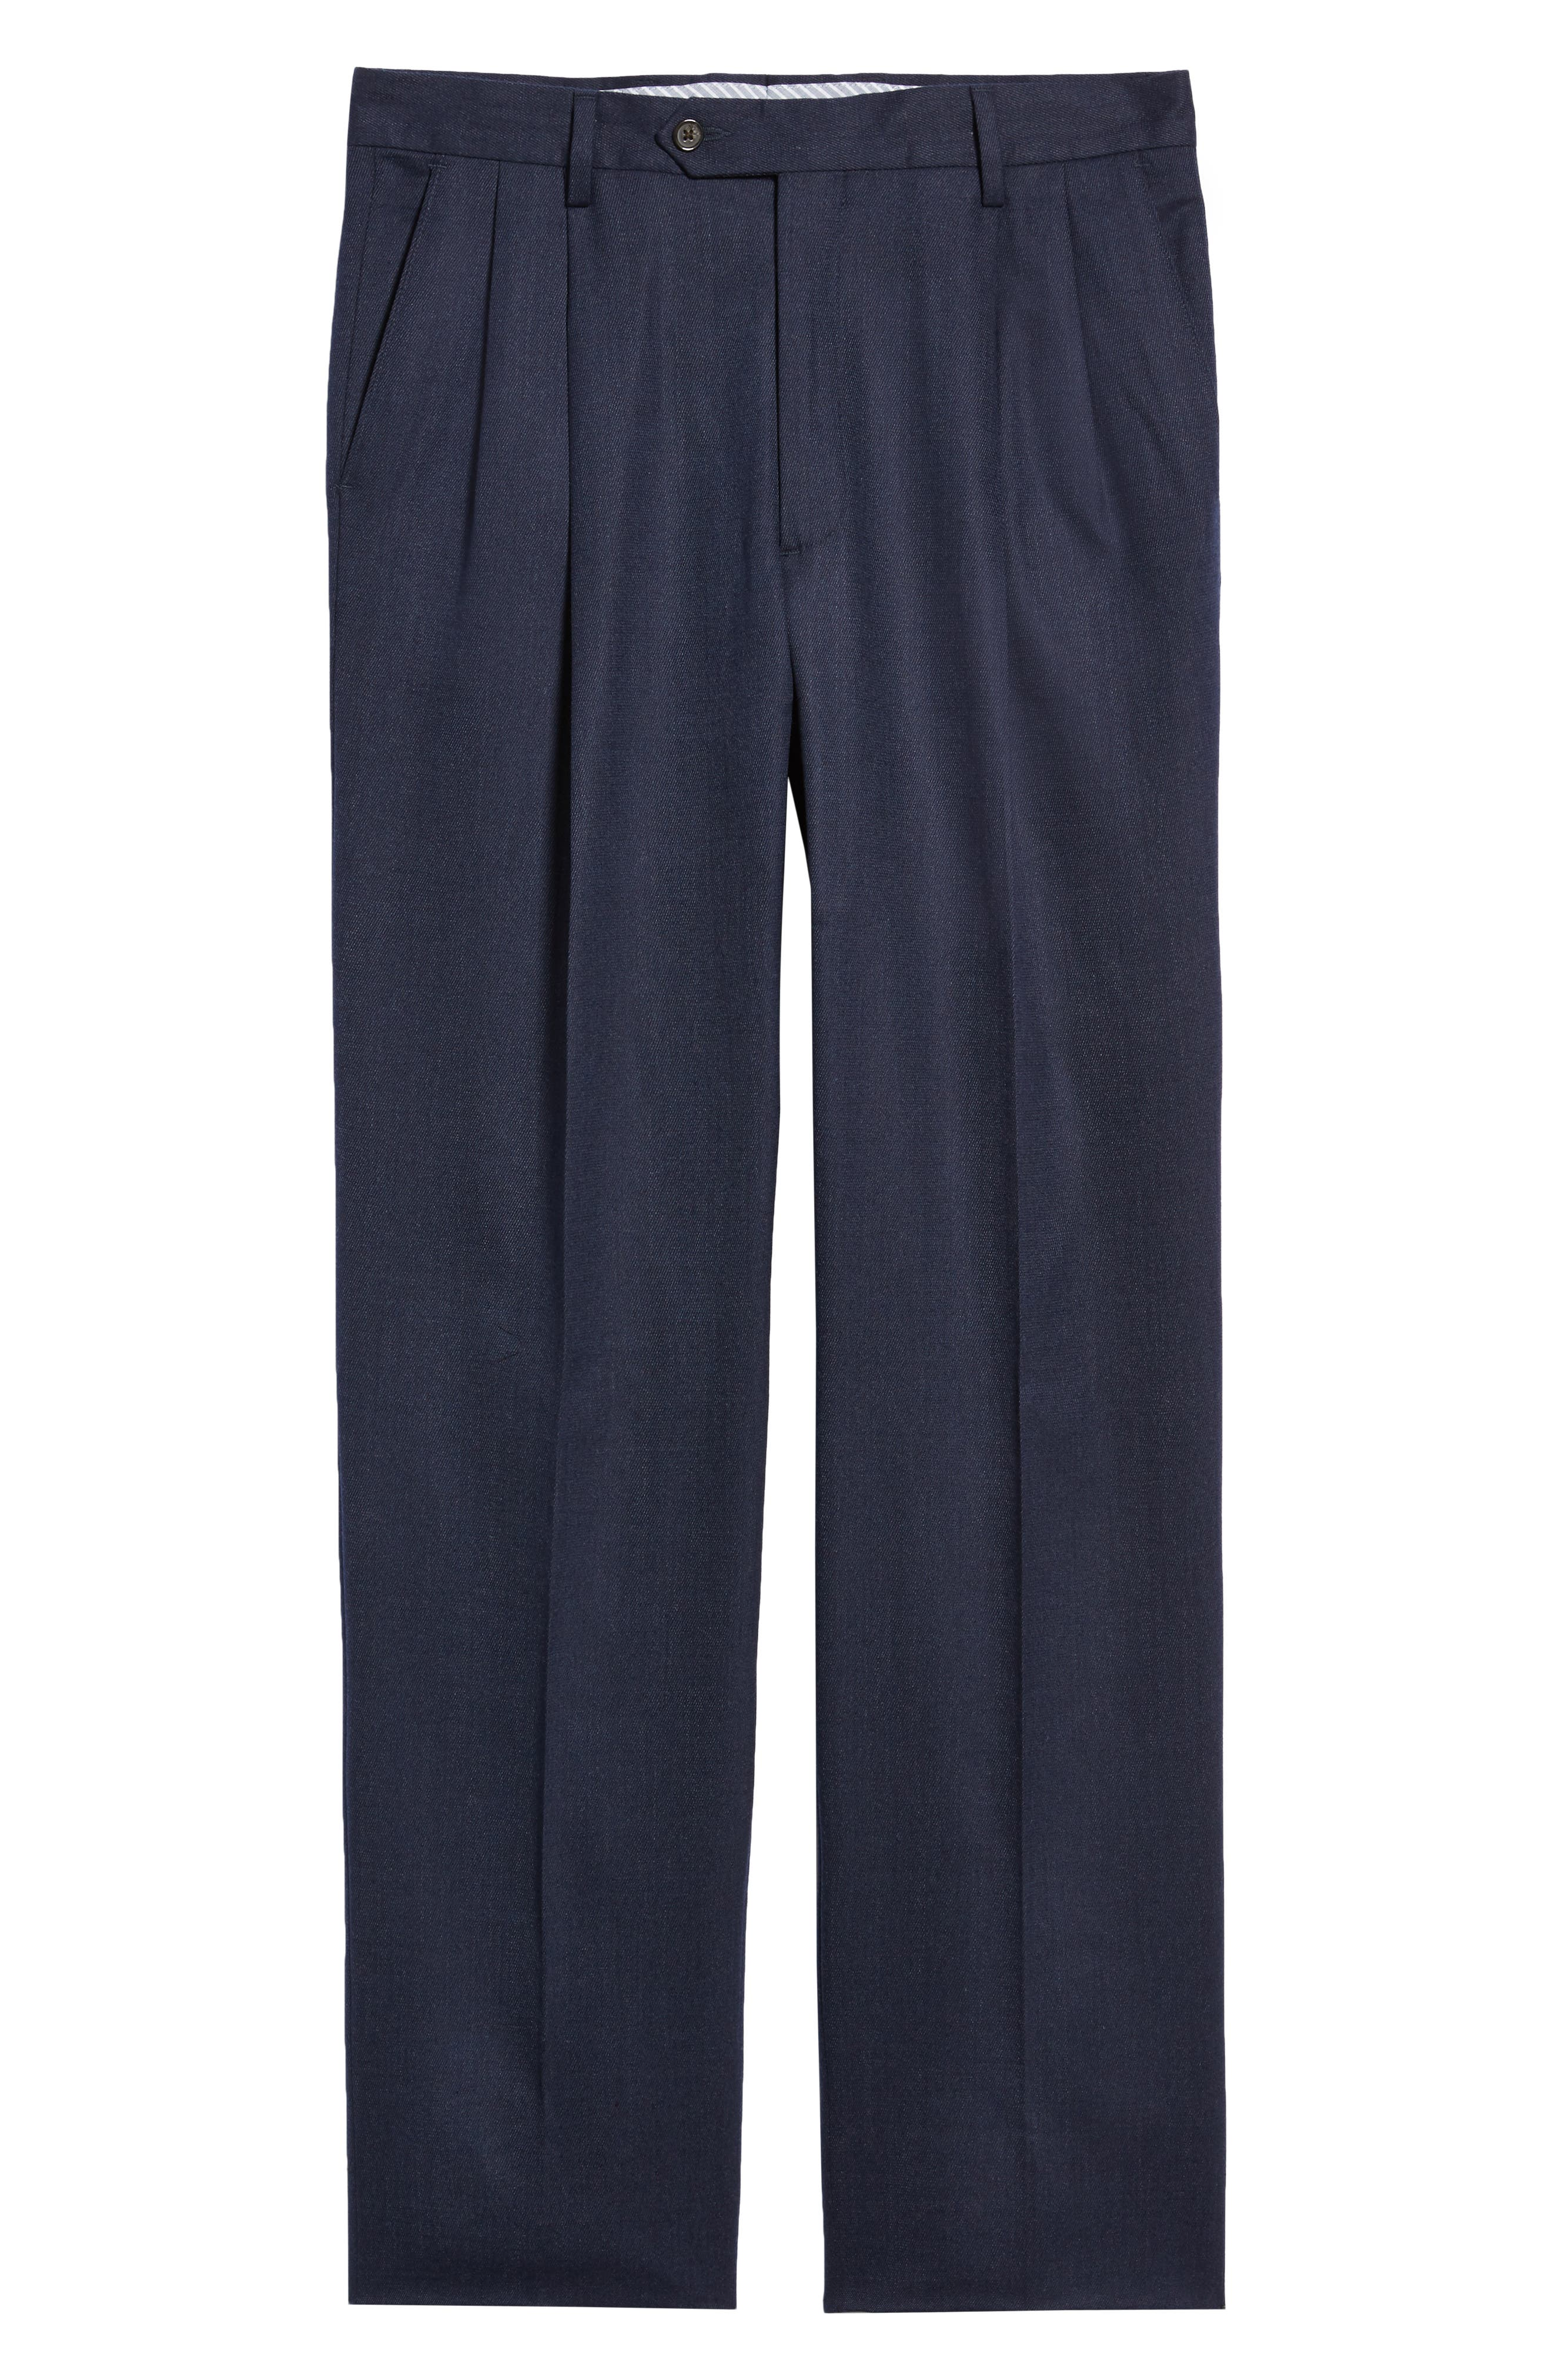 Manufacturing Pleated Stretch Solid Wool & Cotton Trousers,                             Alternate thumbnail 6, color,                             BLUE